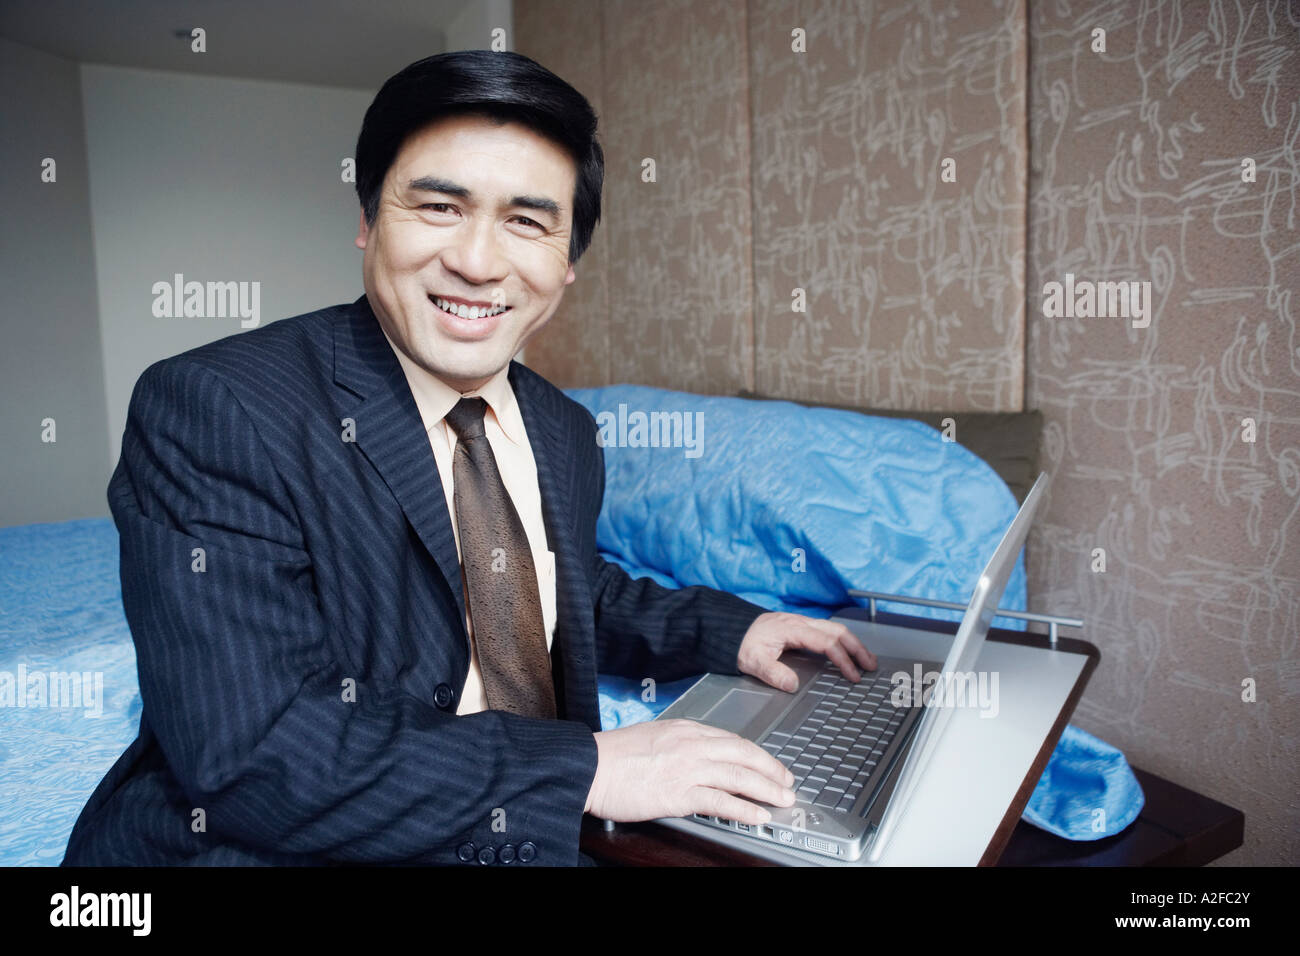 Portrait of a businessman sitting on the bed smiling - Stock Image